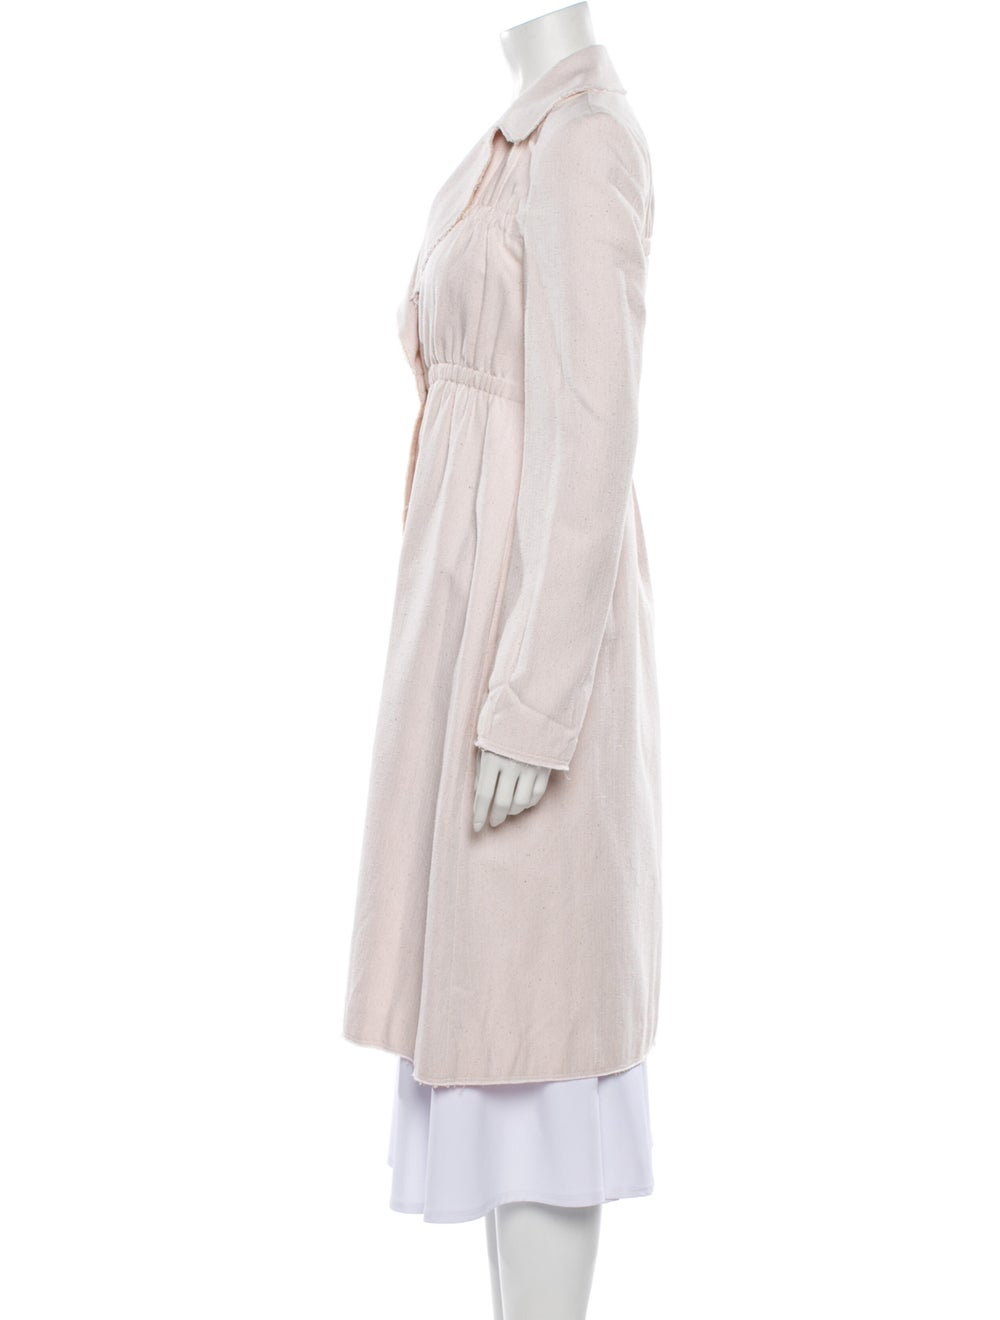 Ports 1961 Trench Coat Pink - image 2